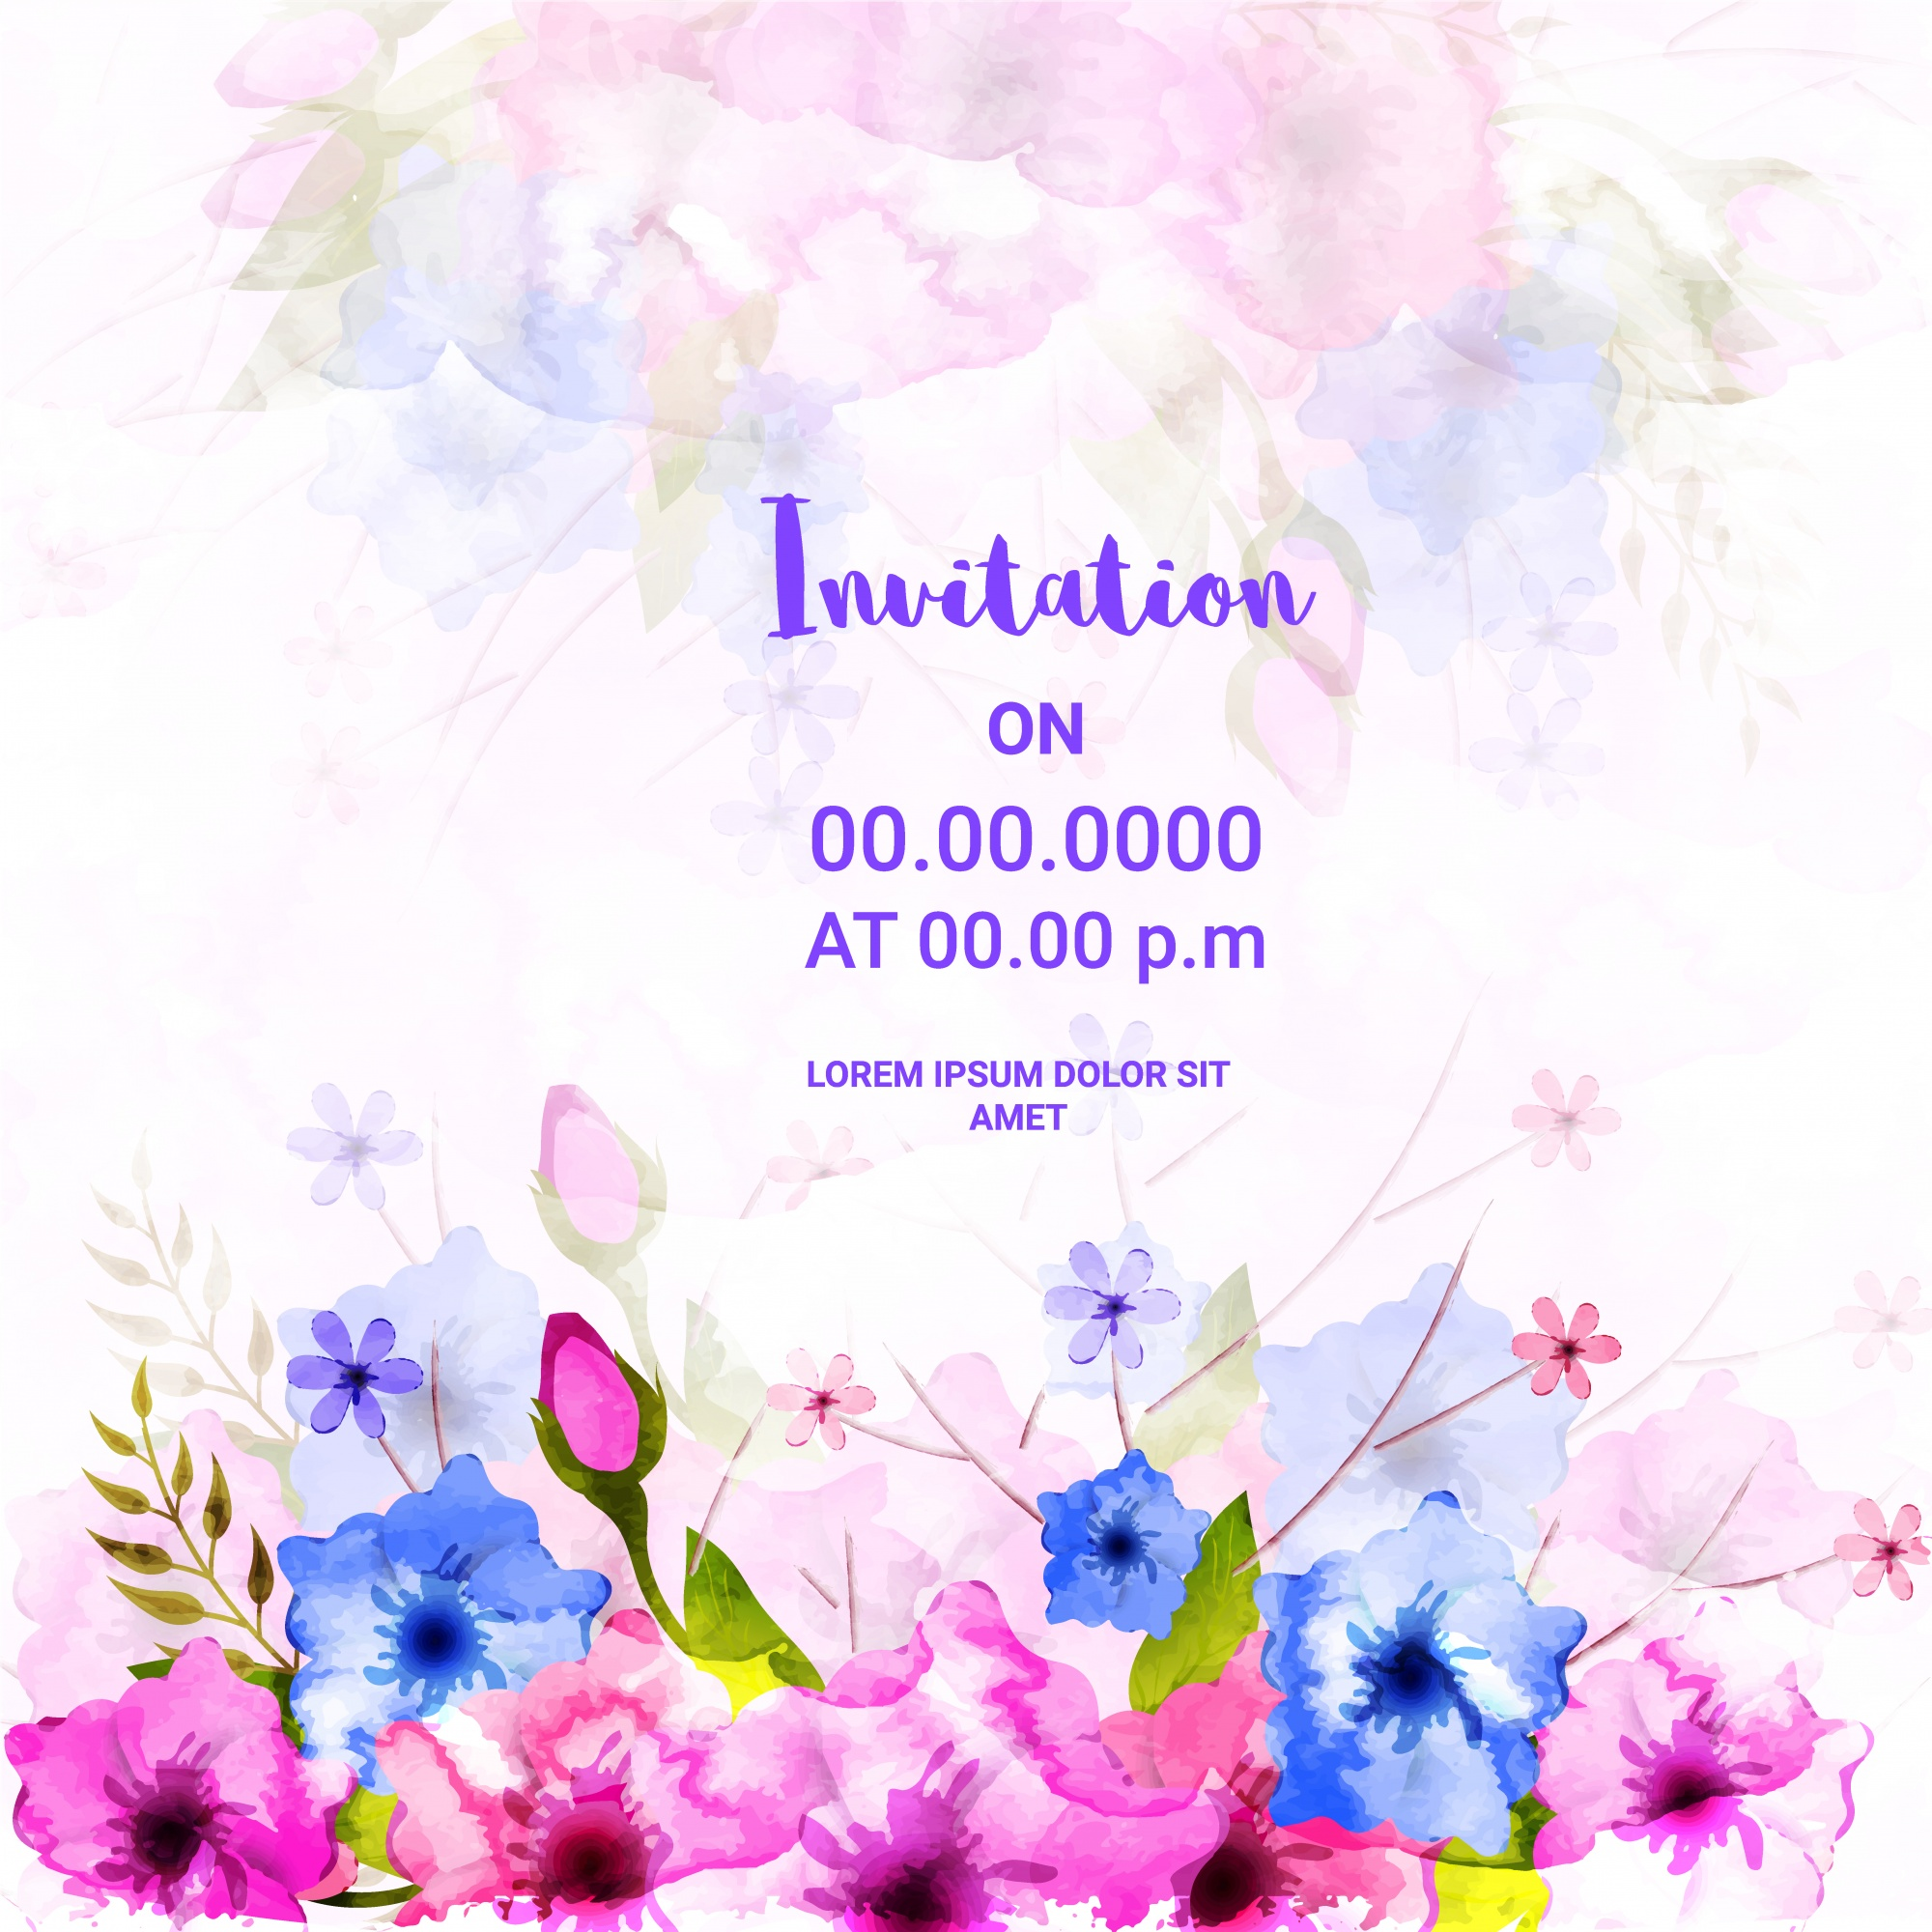 Floral Invitation Card with watercolor flowers.